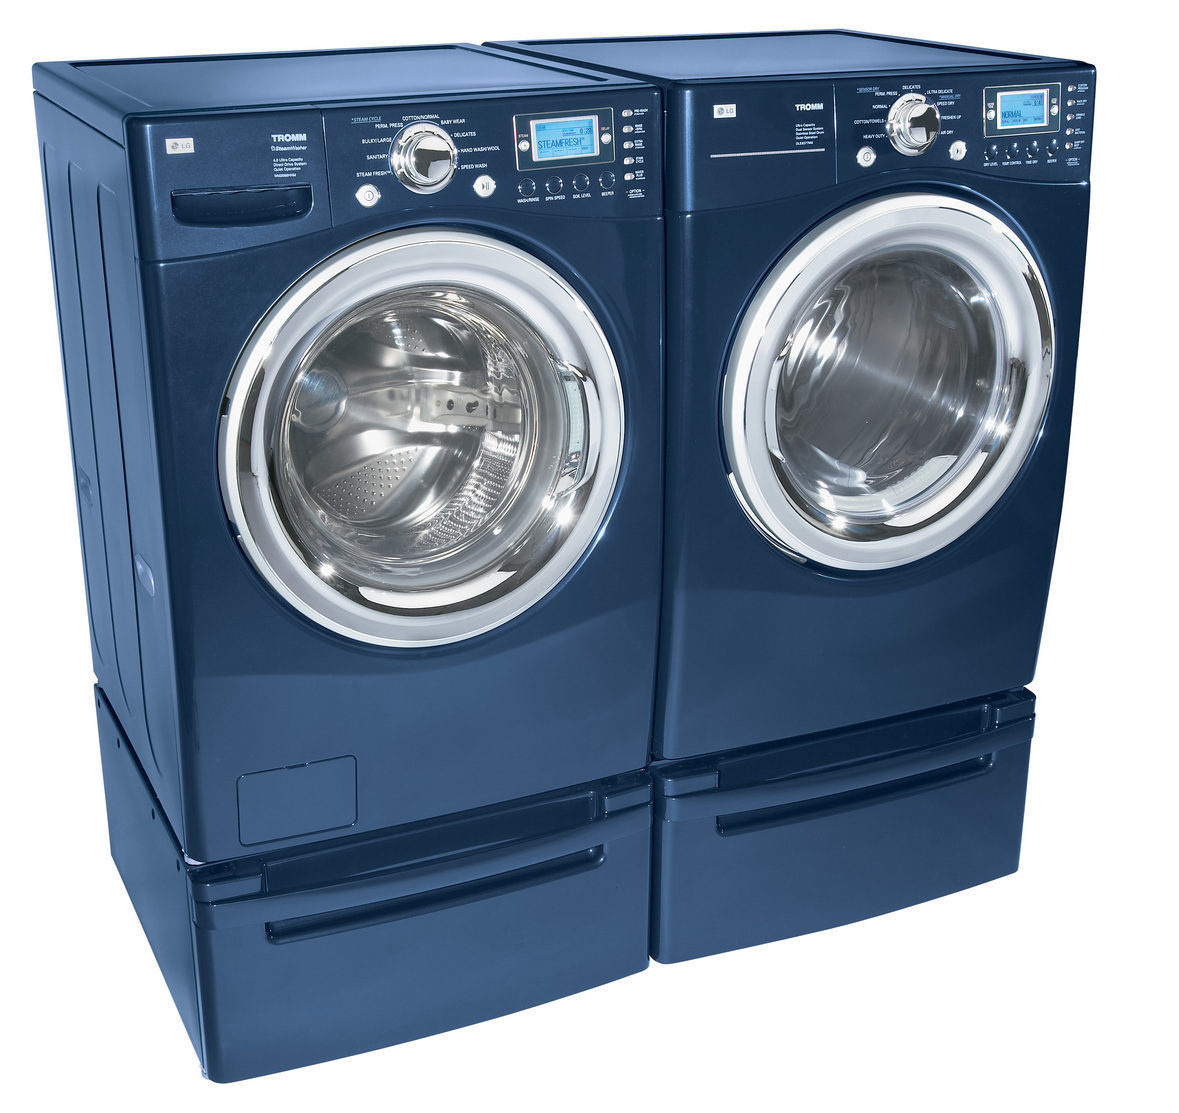 Whirlpool-Maytag Washing Machine and Dishwasher Recalls